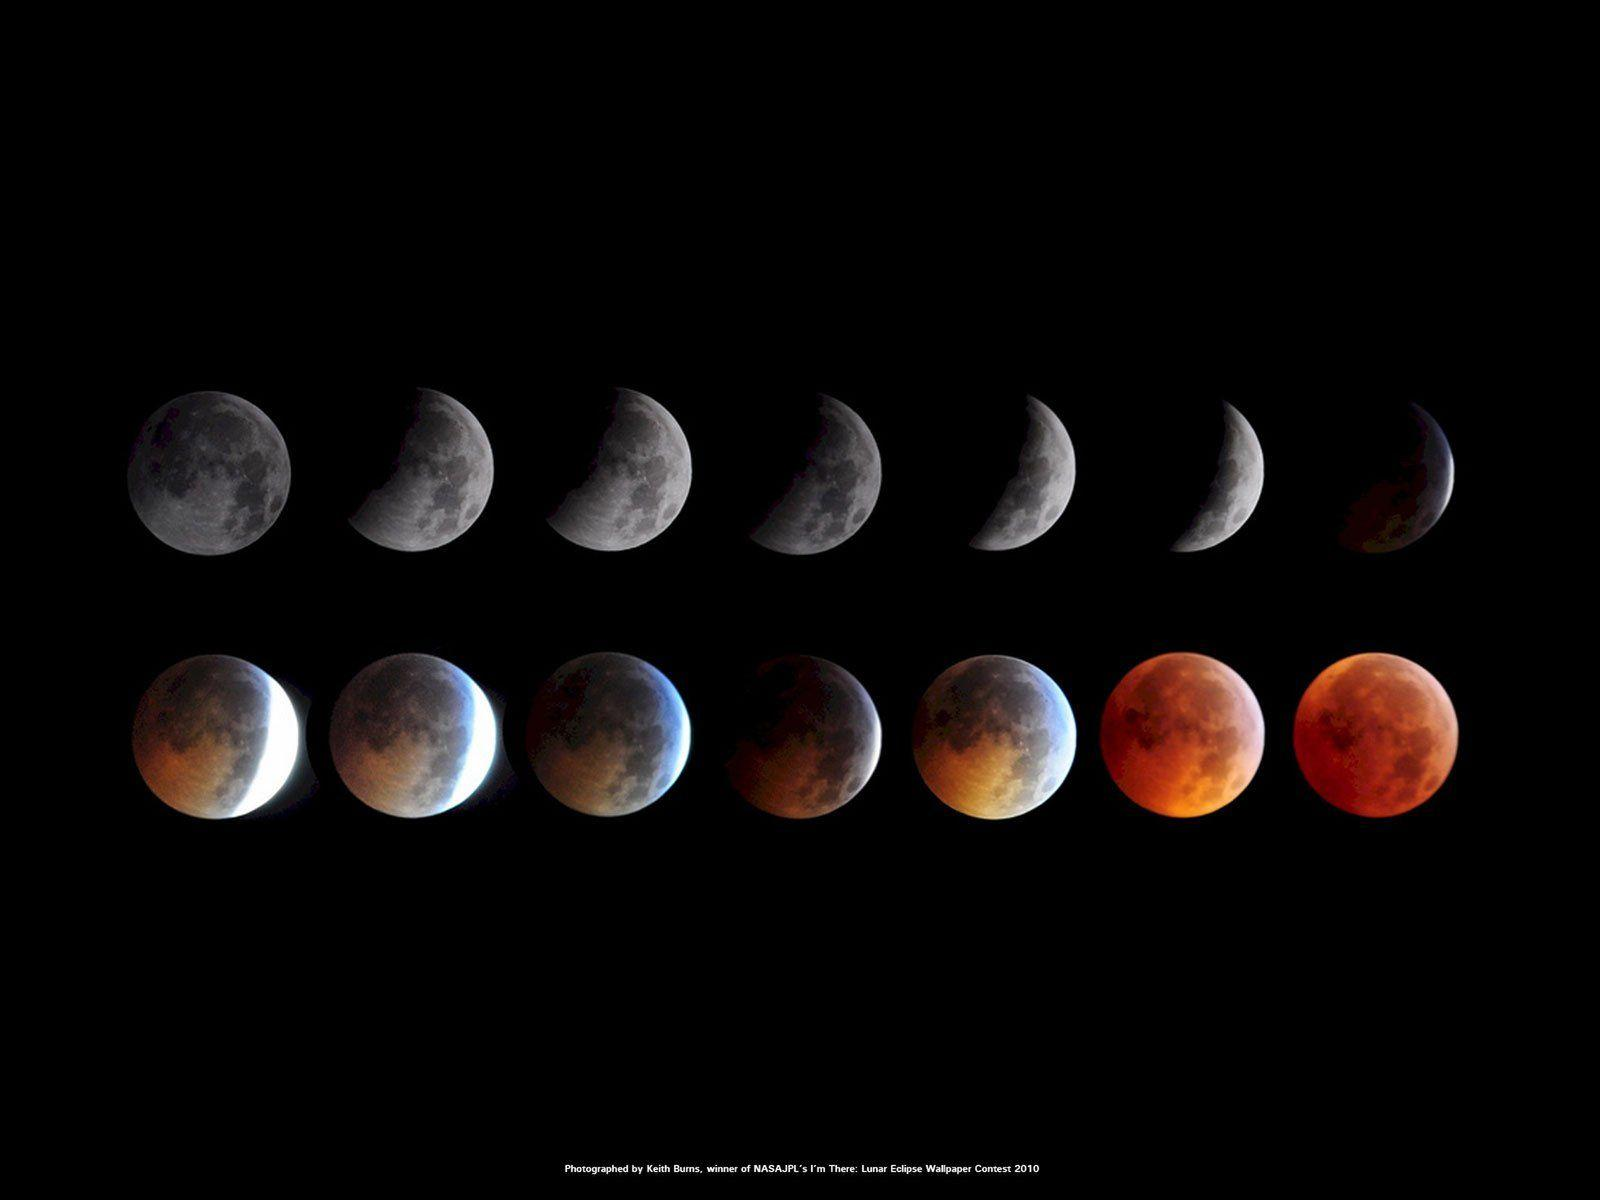 Total Lunar Eclipse of 2010 Space Wallpaper | NASA Wallpapers ...